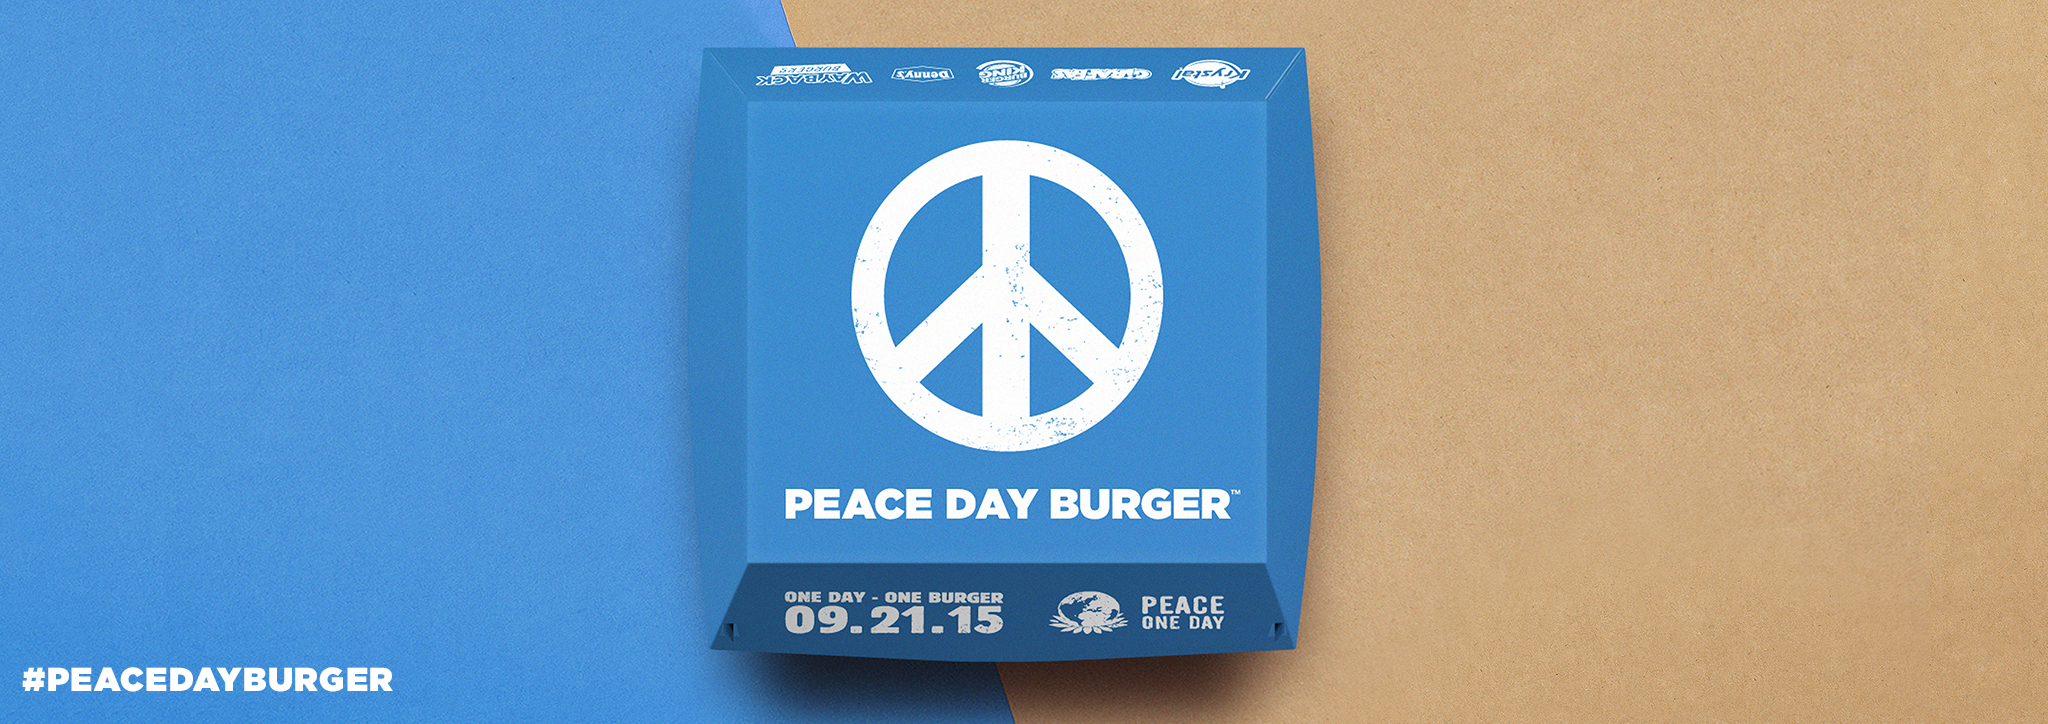 Burger King Planning Peace Burger With Denny's, Wayback, Others; Still Not Giving Up On McD's